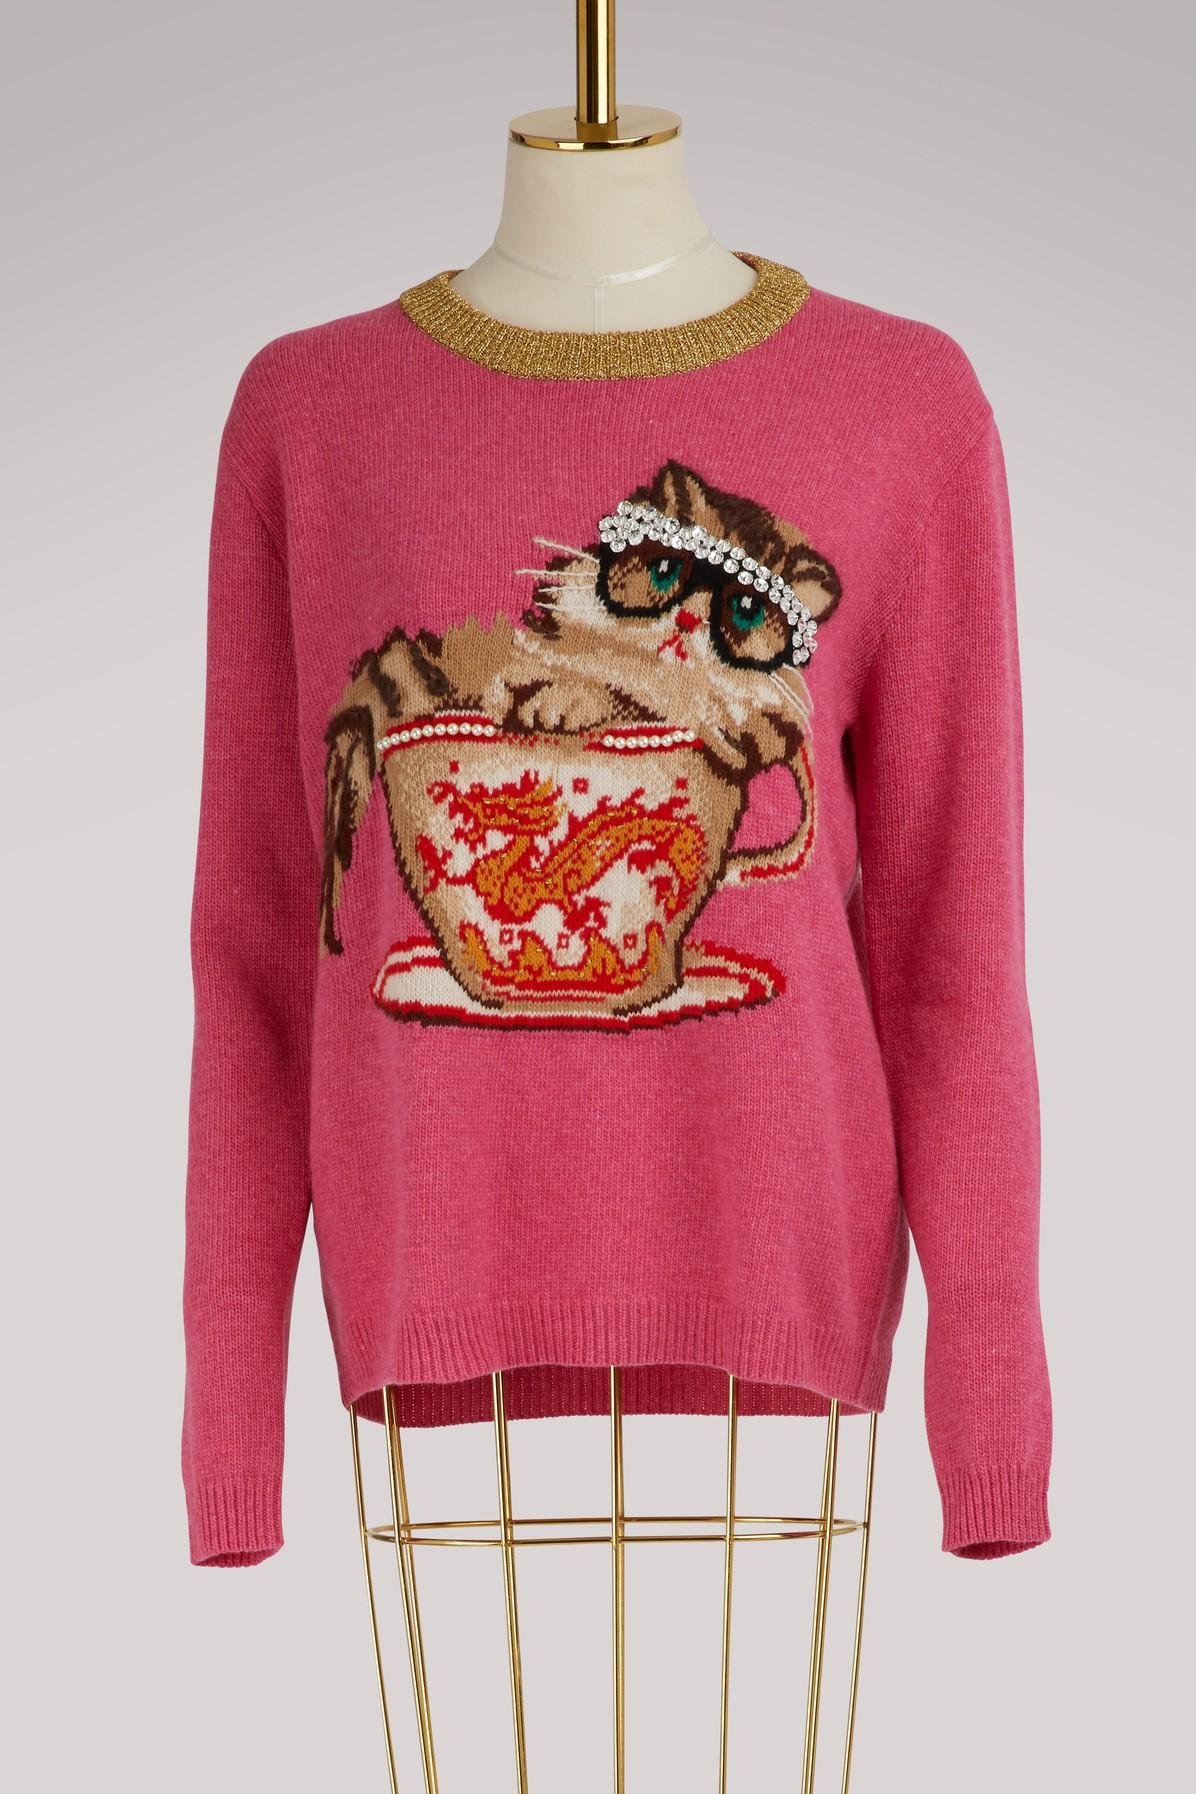 adfc525b94a Lyst - Gucci Cat   Glasses Knit Sweater in Pink